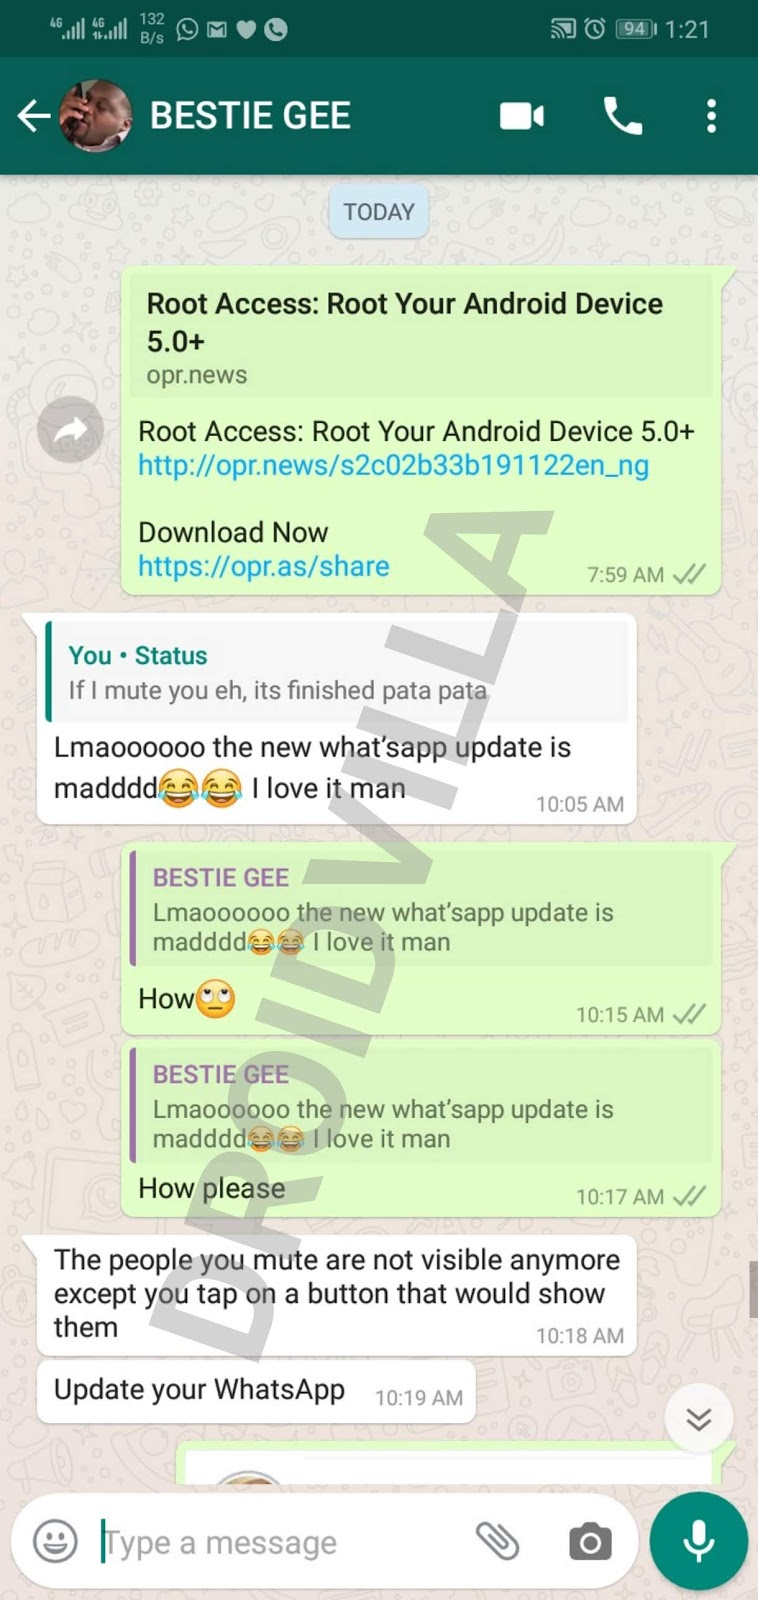 Whatsapp Update: Check out this new added feature on v 2.19.347